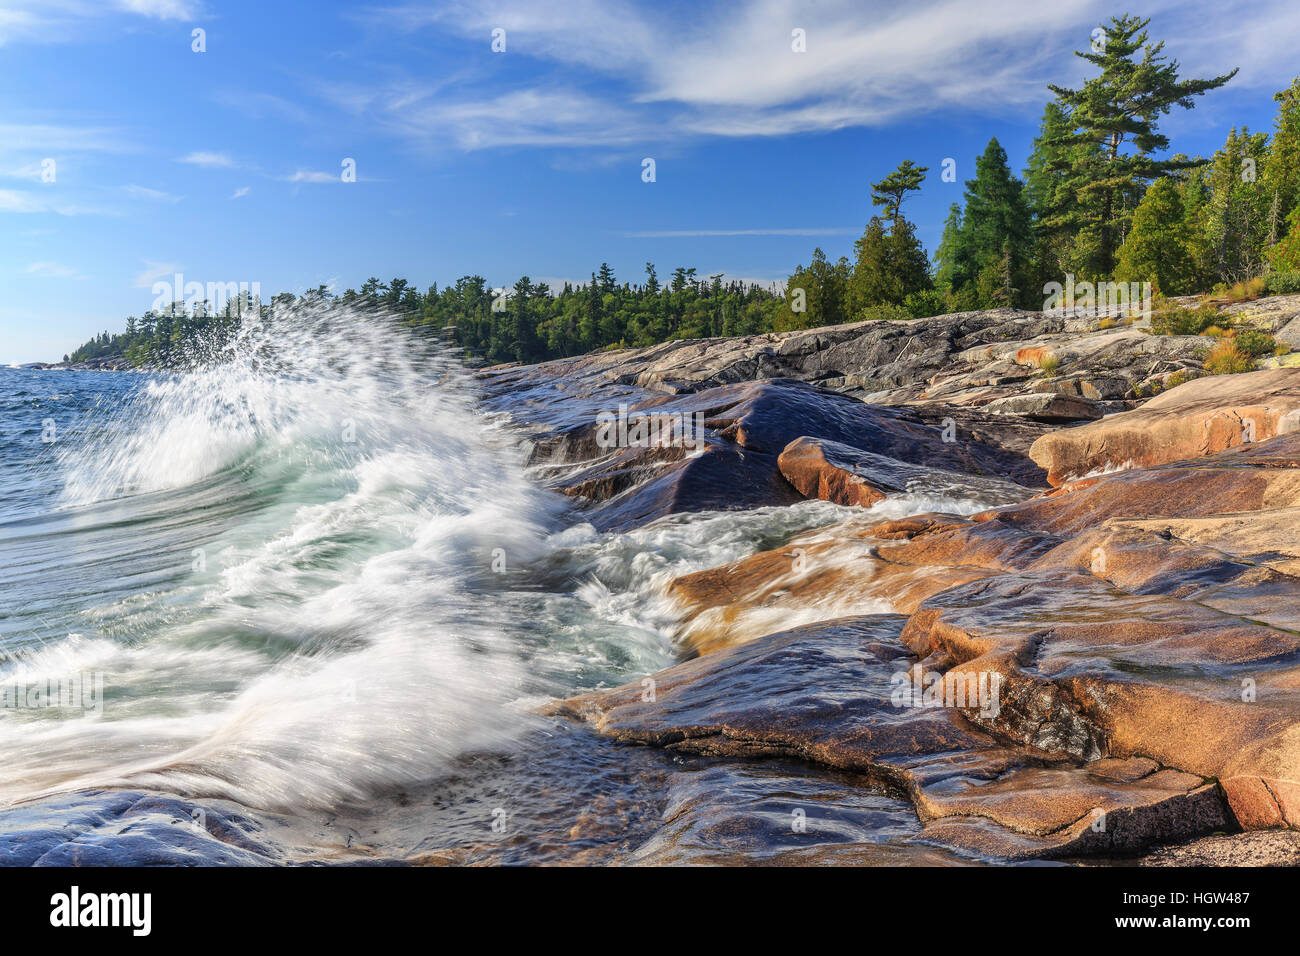 Crashing Waves on Lake Superior, Lake Superior Provincial Park, Ontario, Canada. - Stock Image